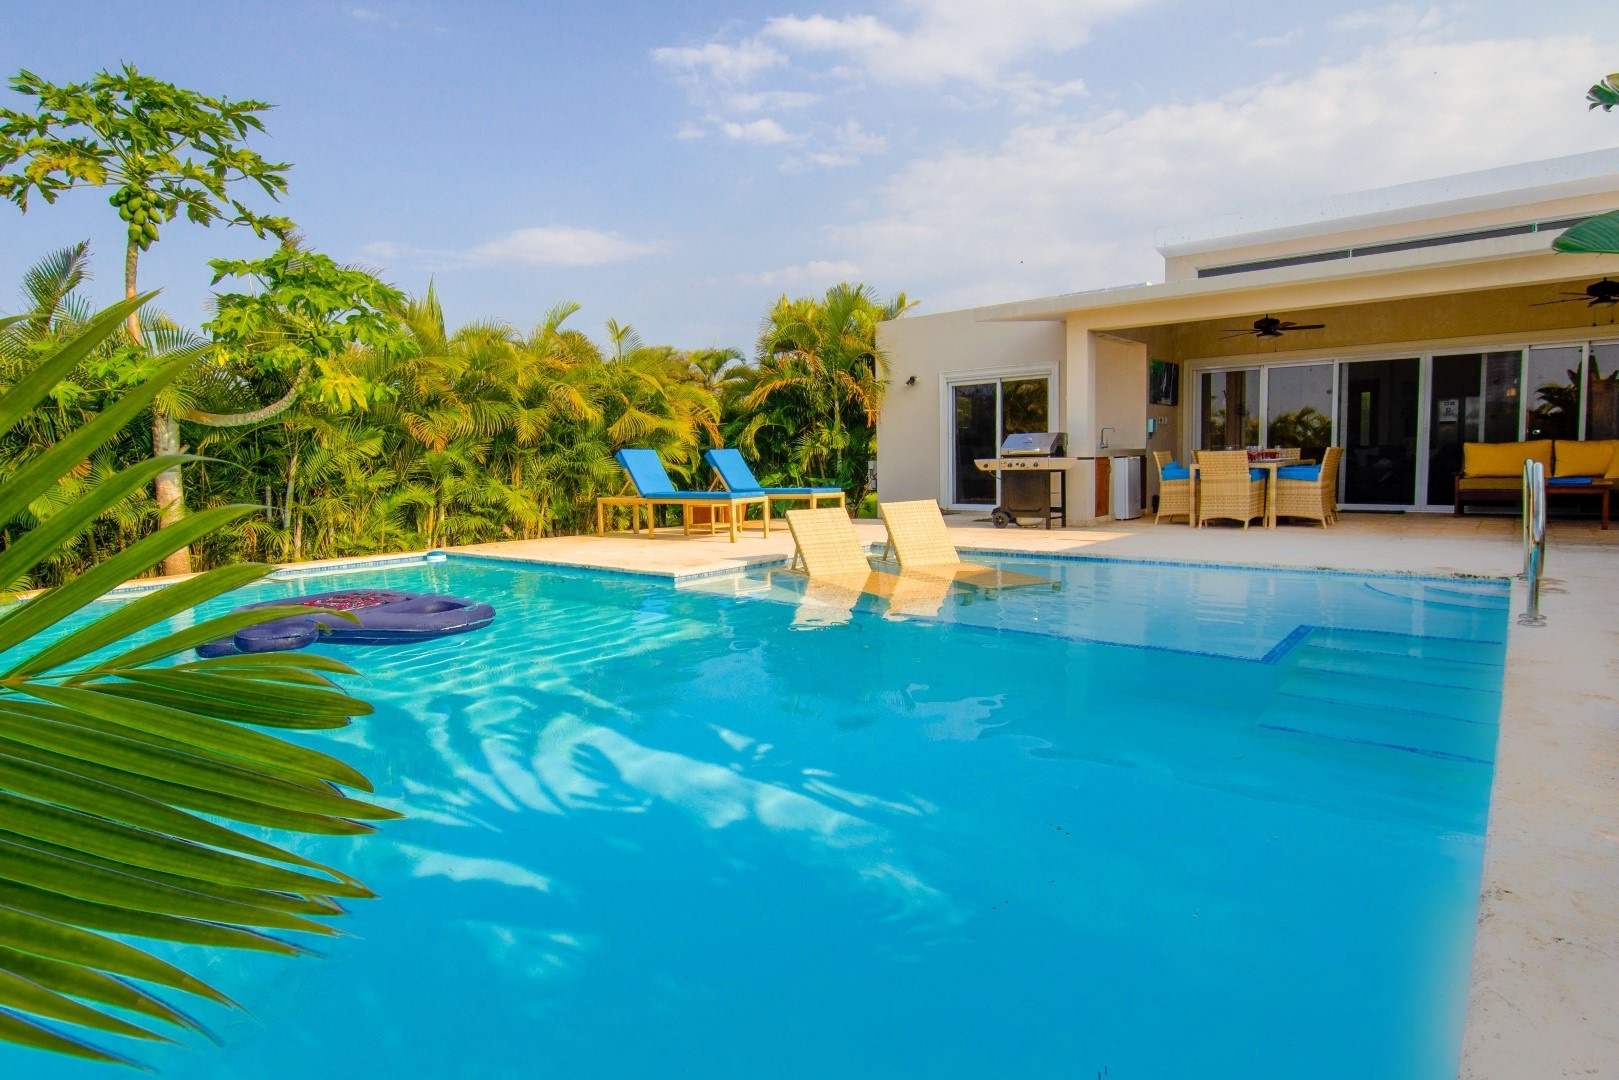 3 Bedroom Private Resort Villa Sosua